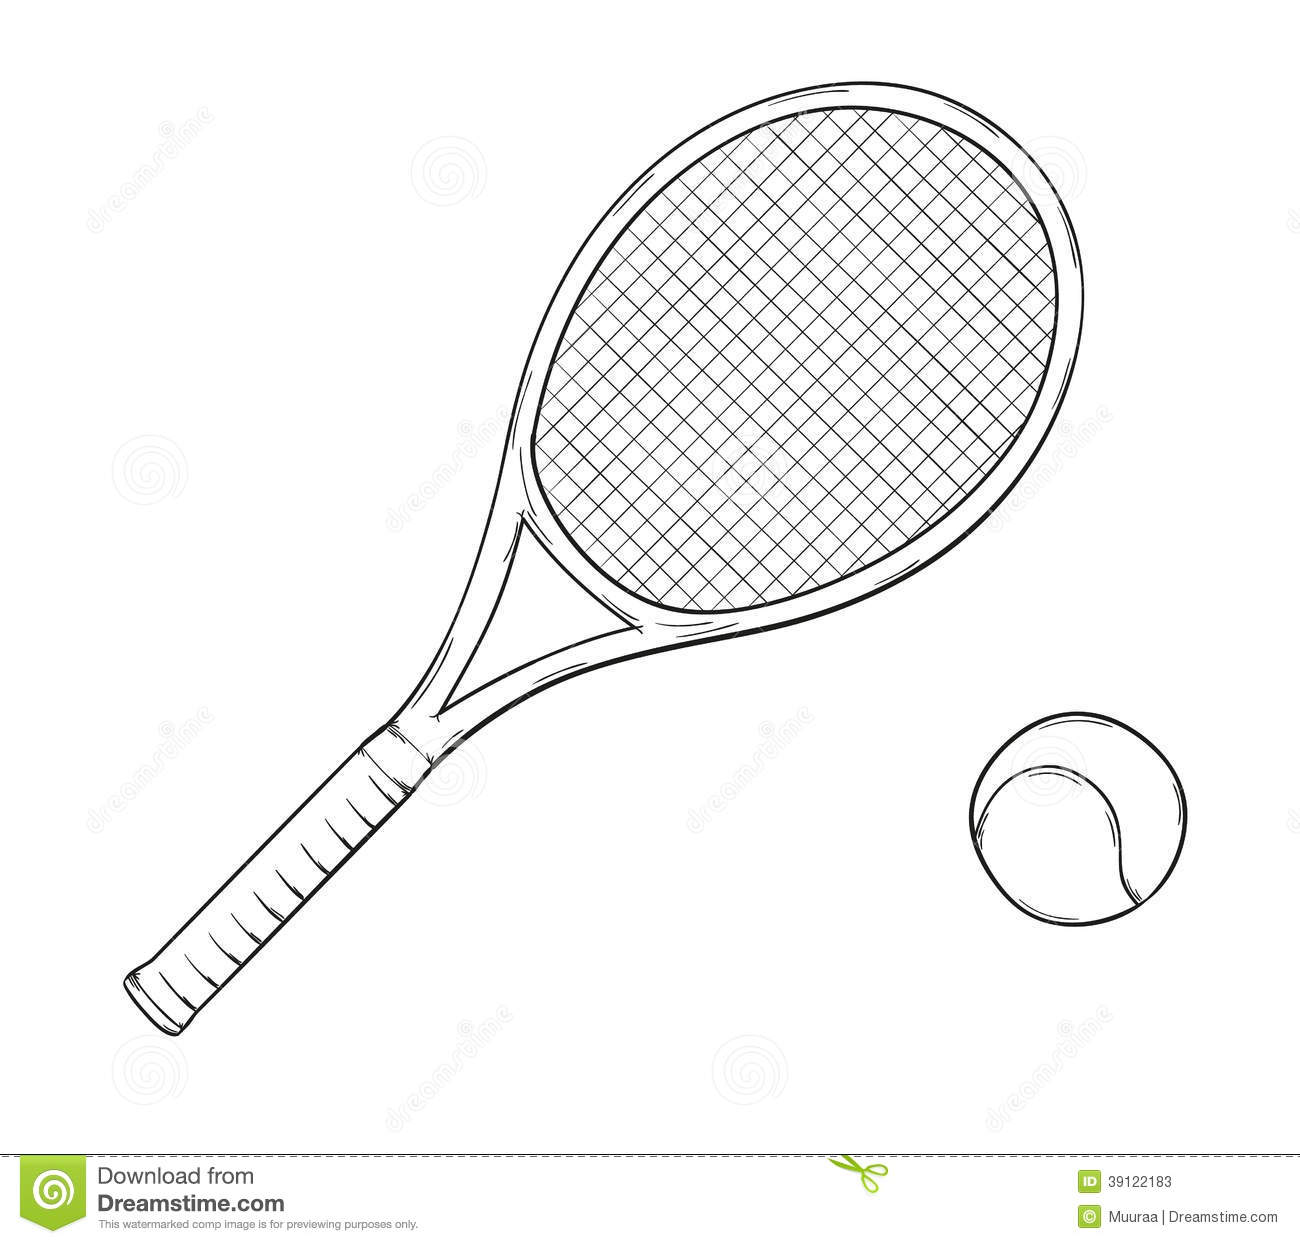 Sketch Of The Tennis Racket And Ball Isolated